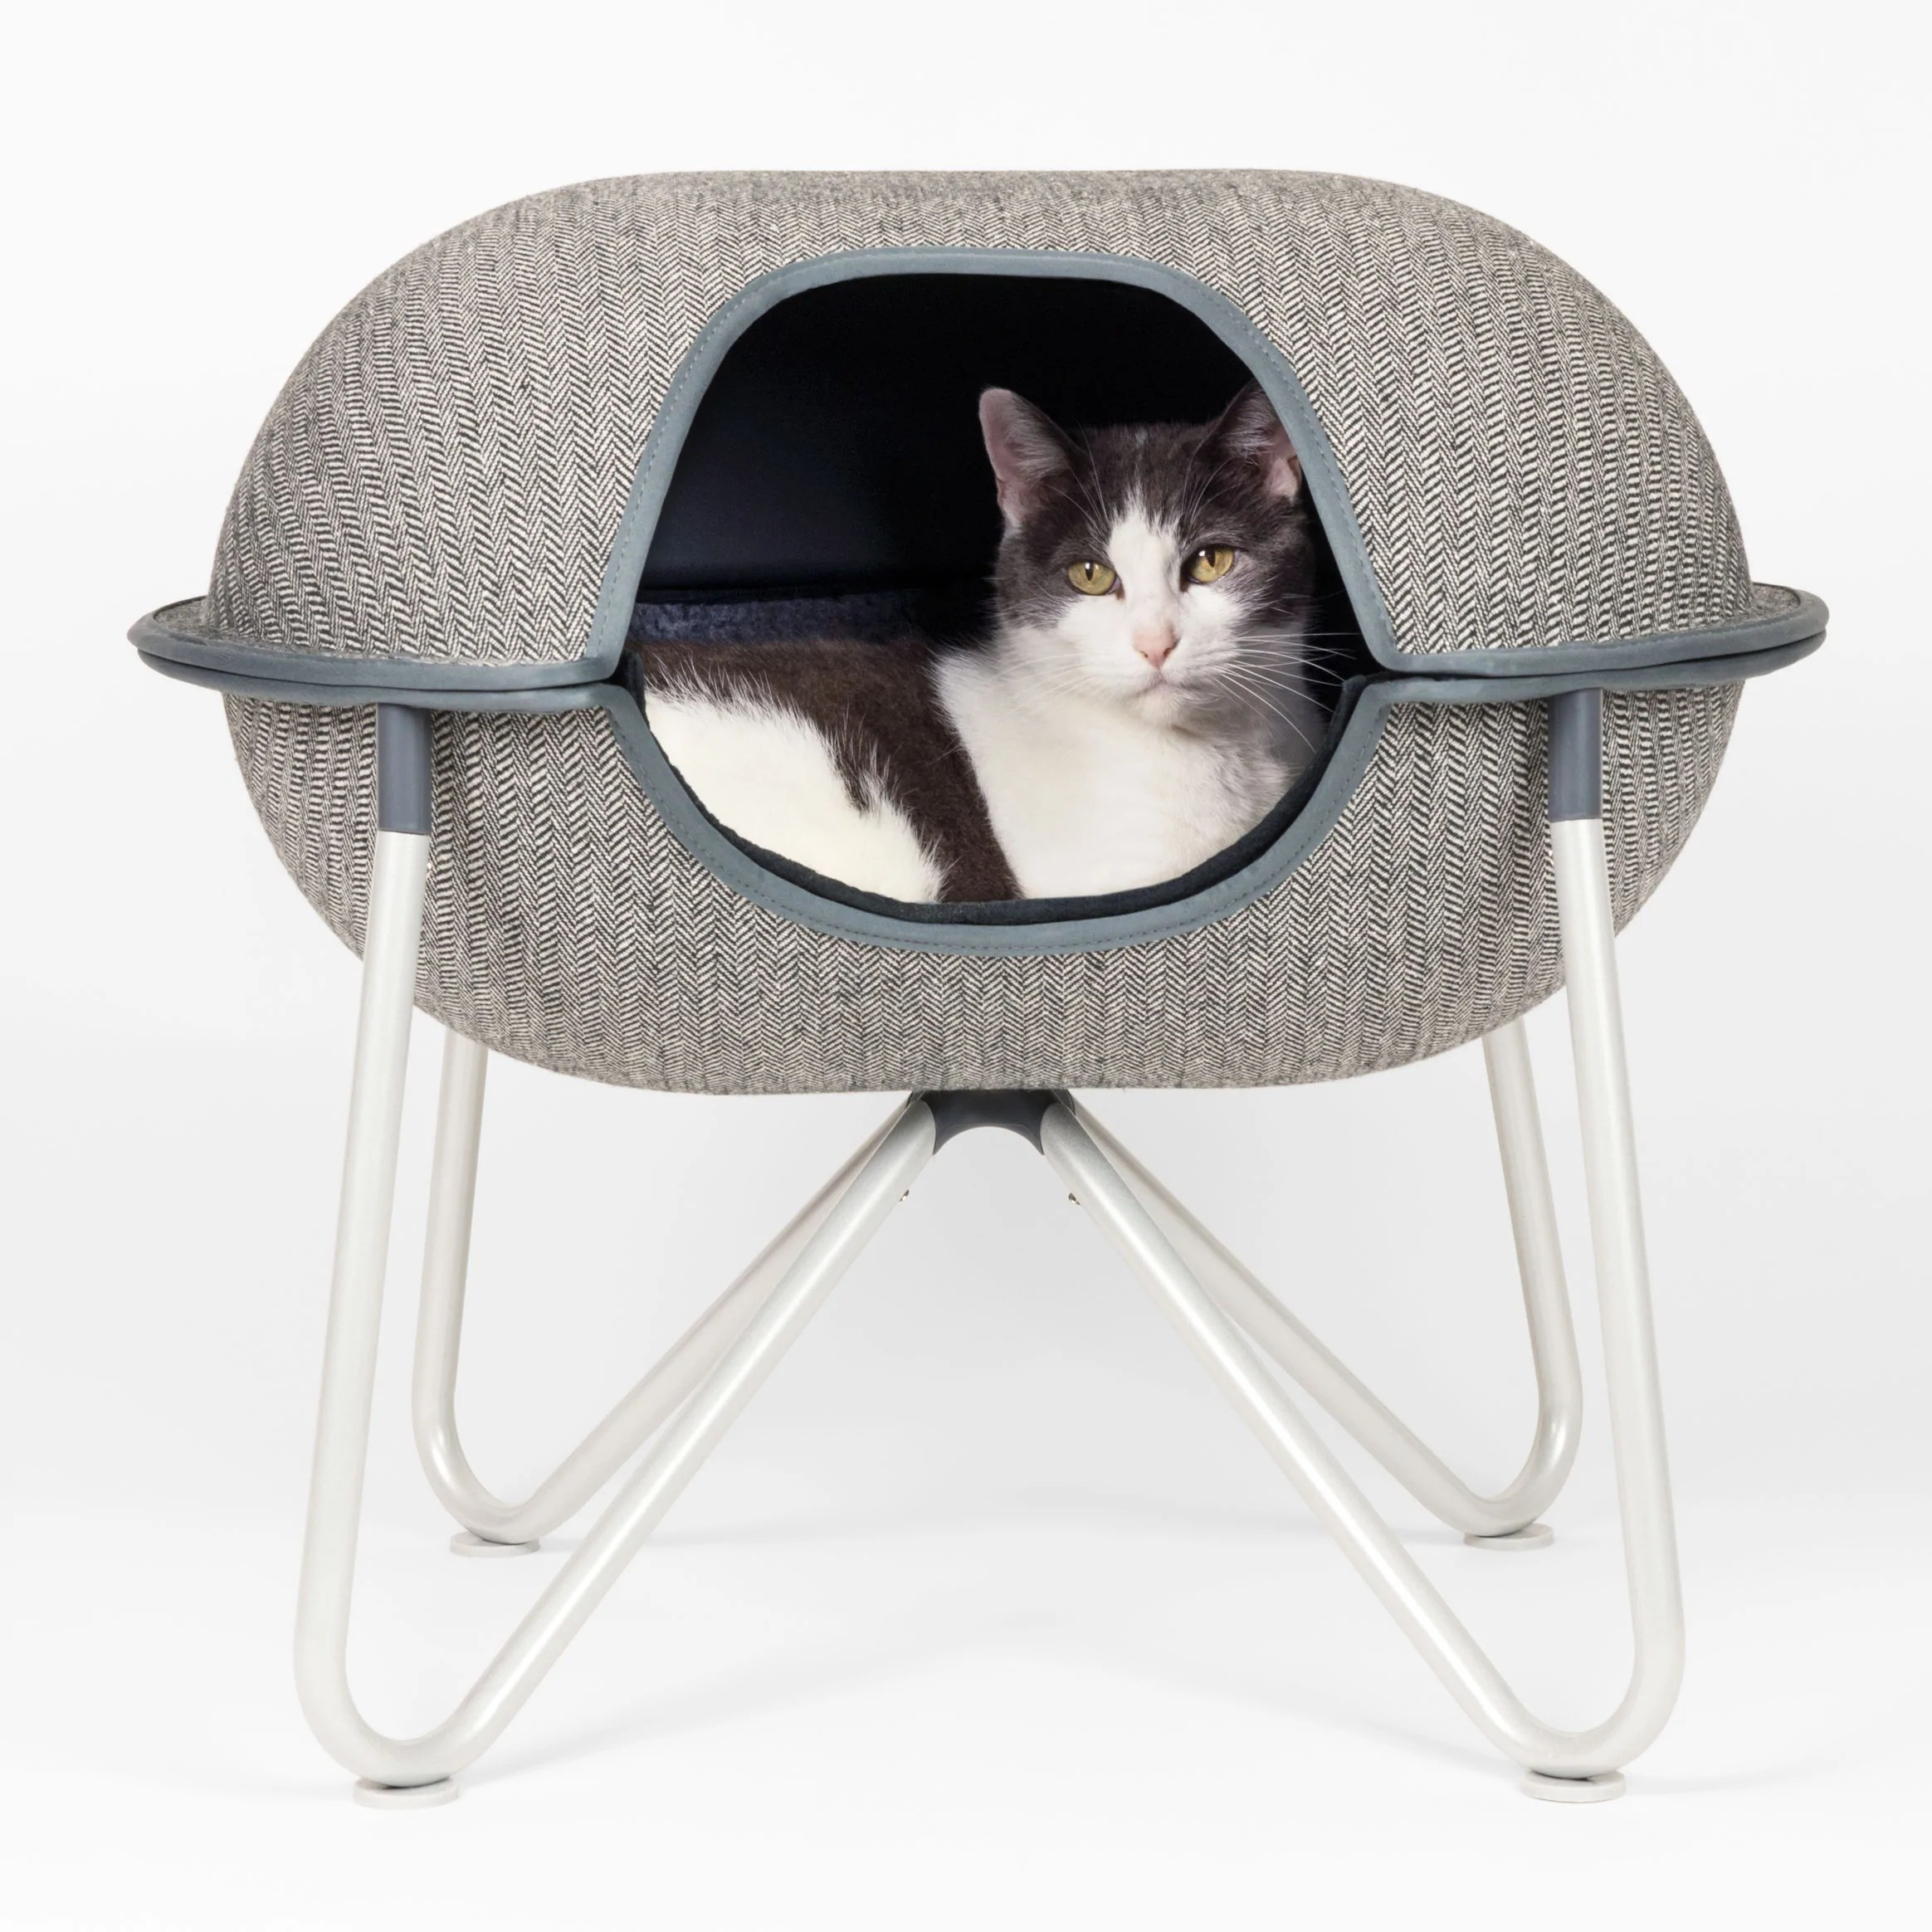 Cat Furniture For Sale Buy Modern Cat And Dog Beds Online Herringbone Hepper Pod